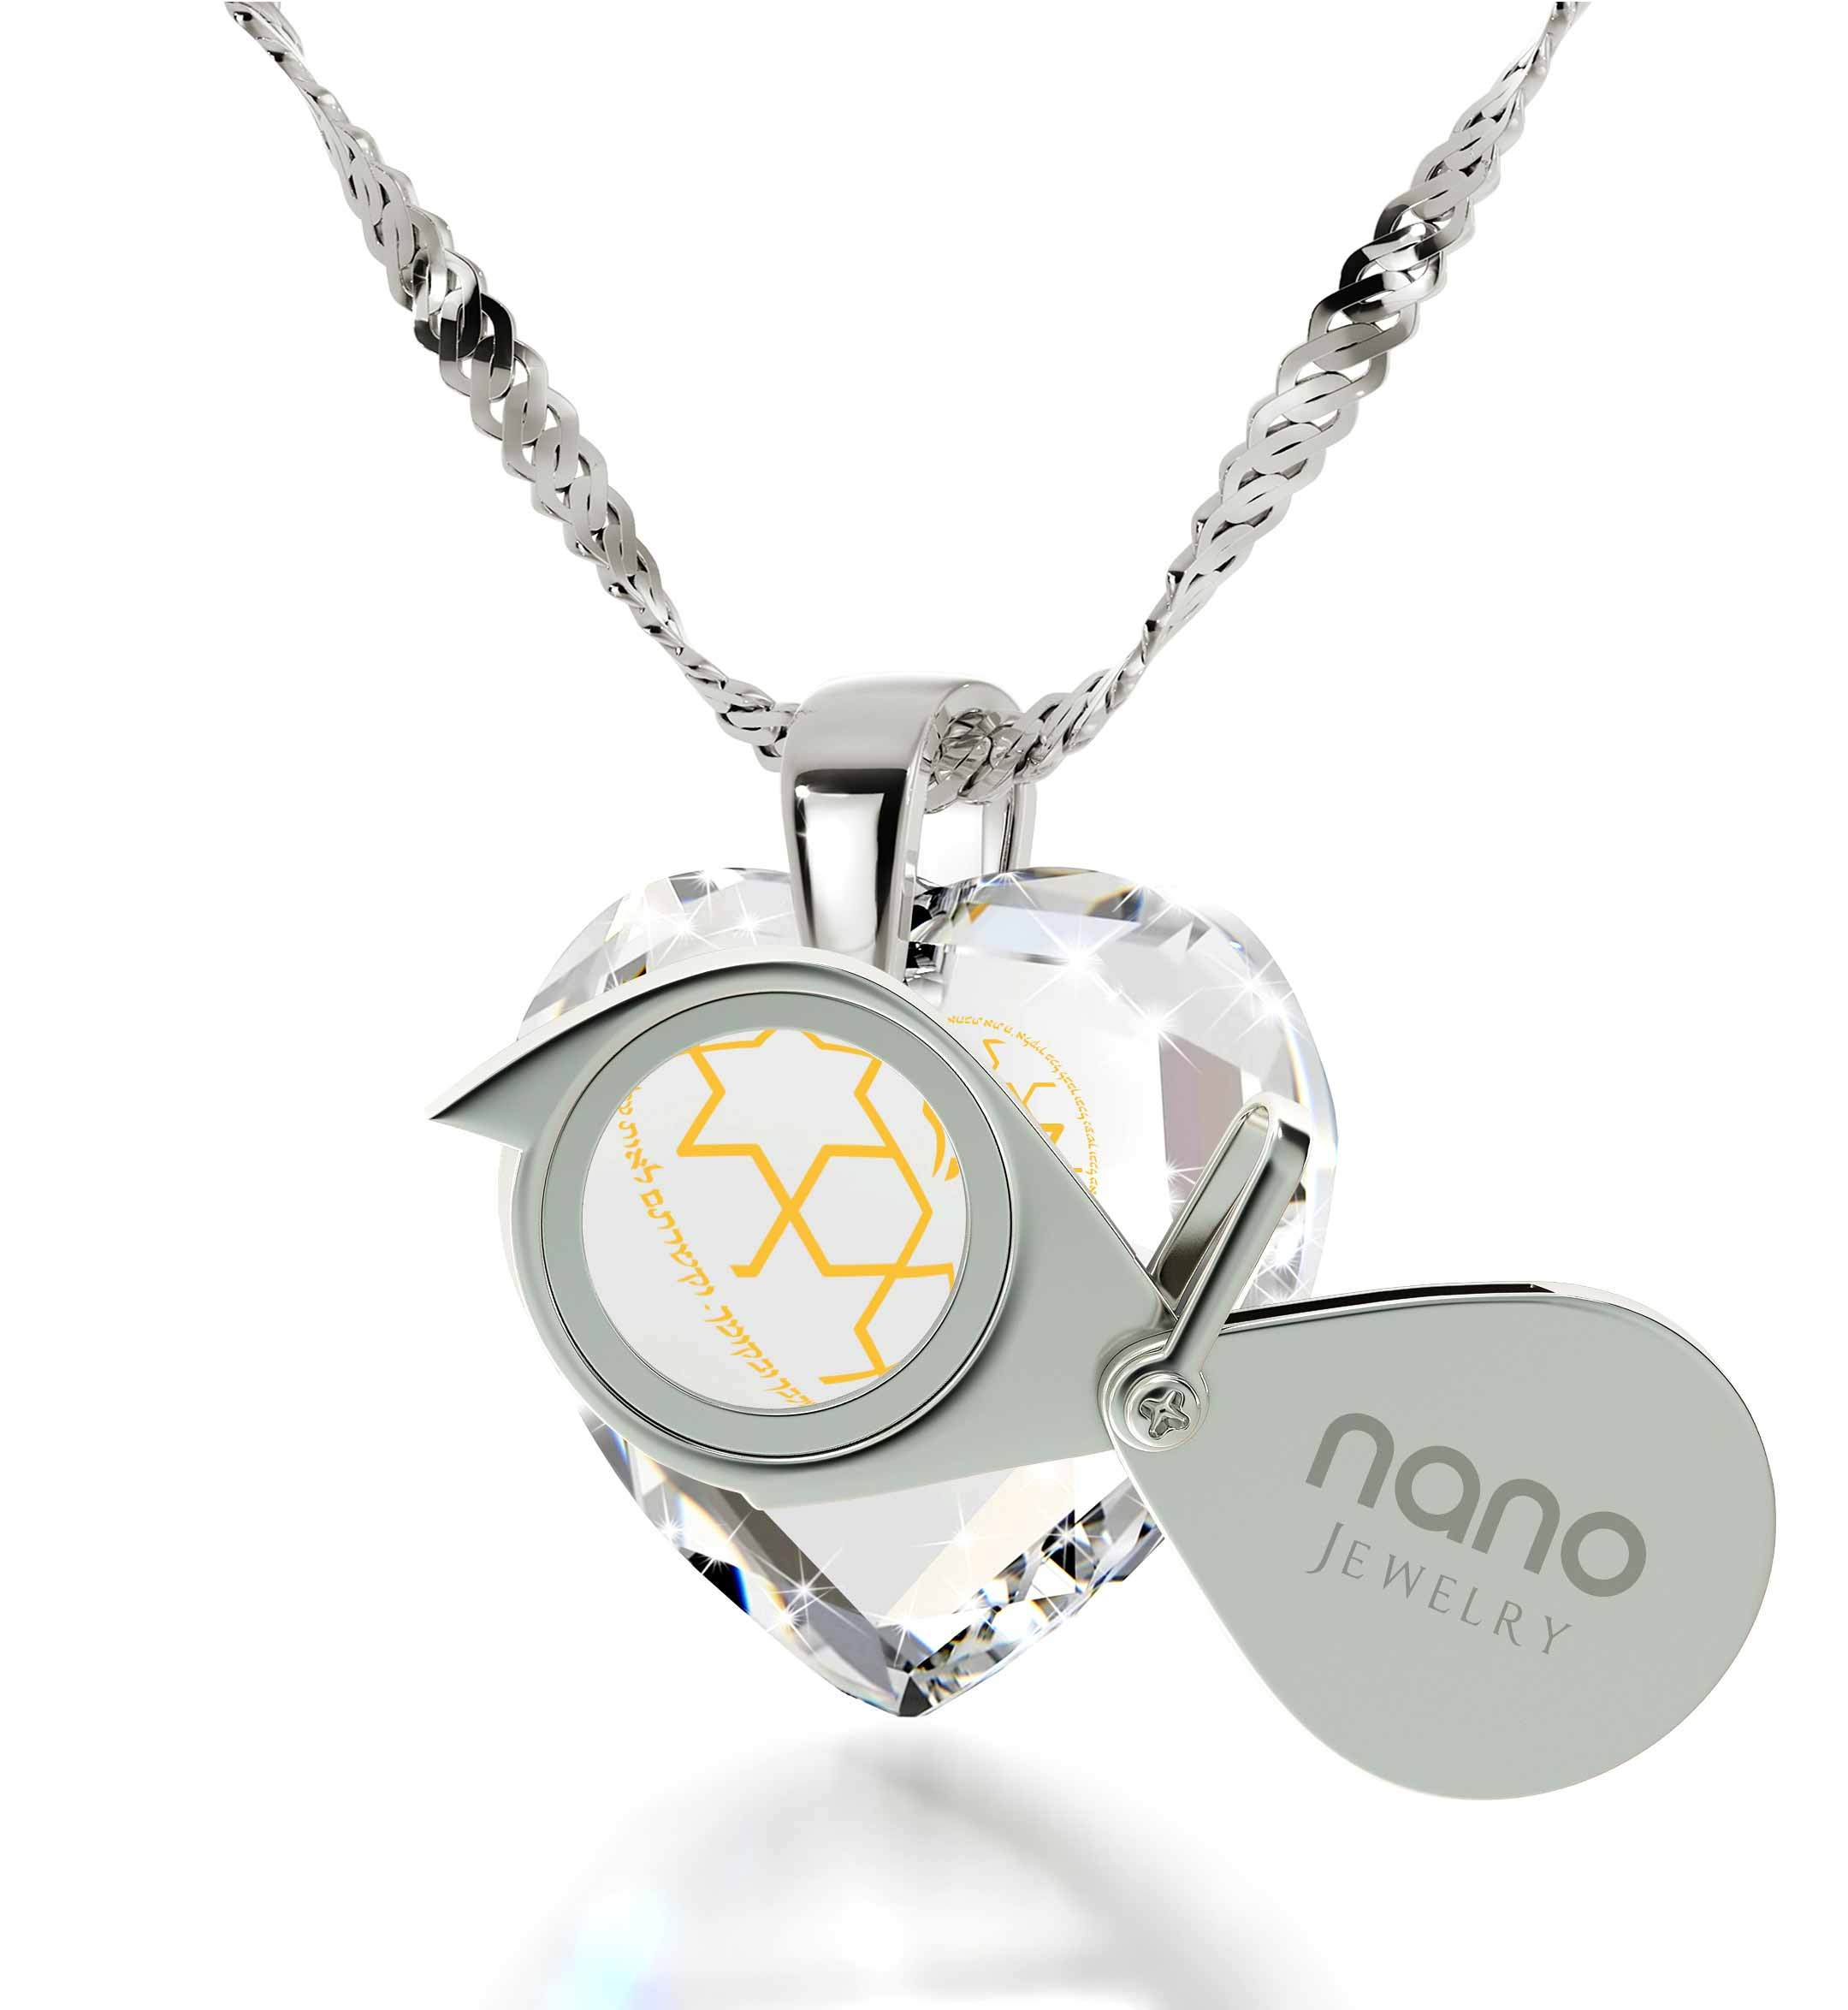 """Shema Yisrael"" Engraved in 24k, Jewelry from Israel with Swarovski Crystal Stone, Judaica Gifts"